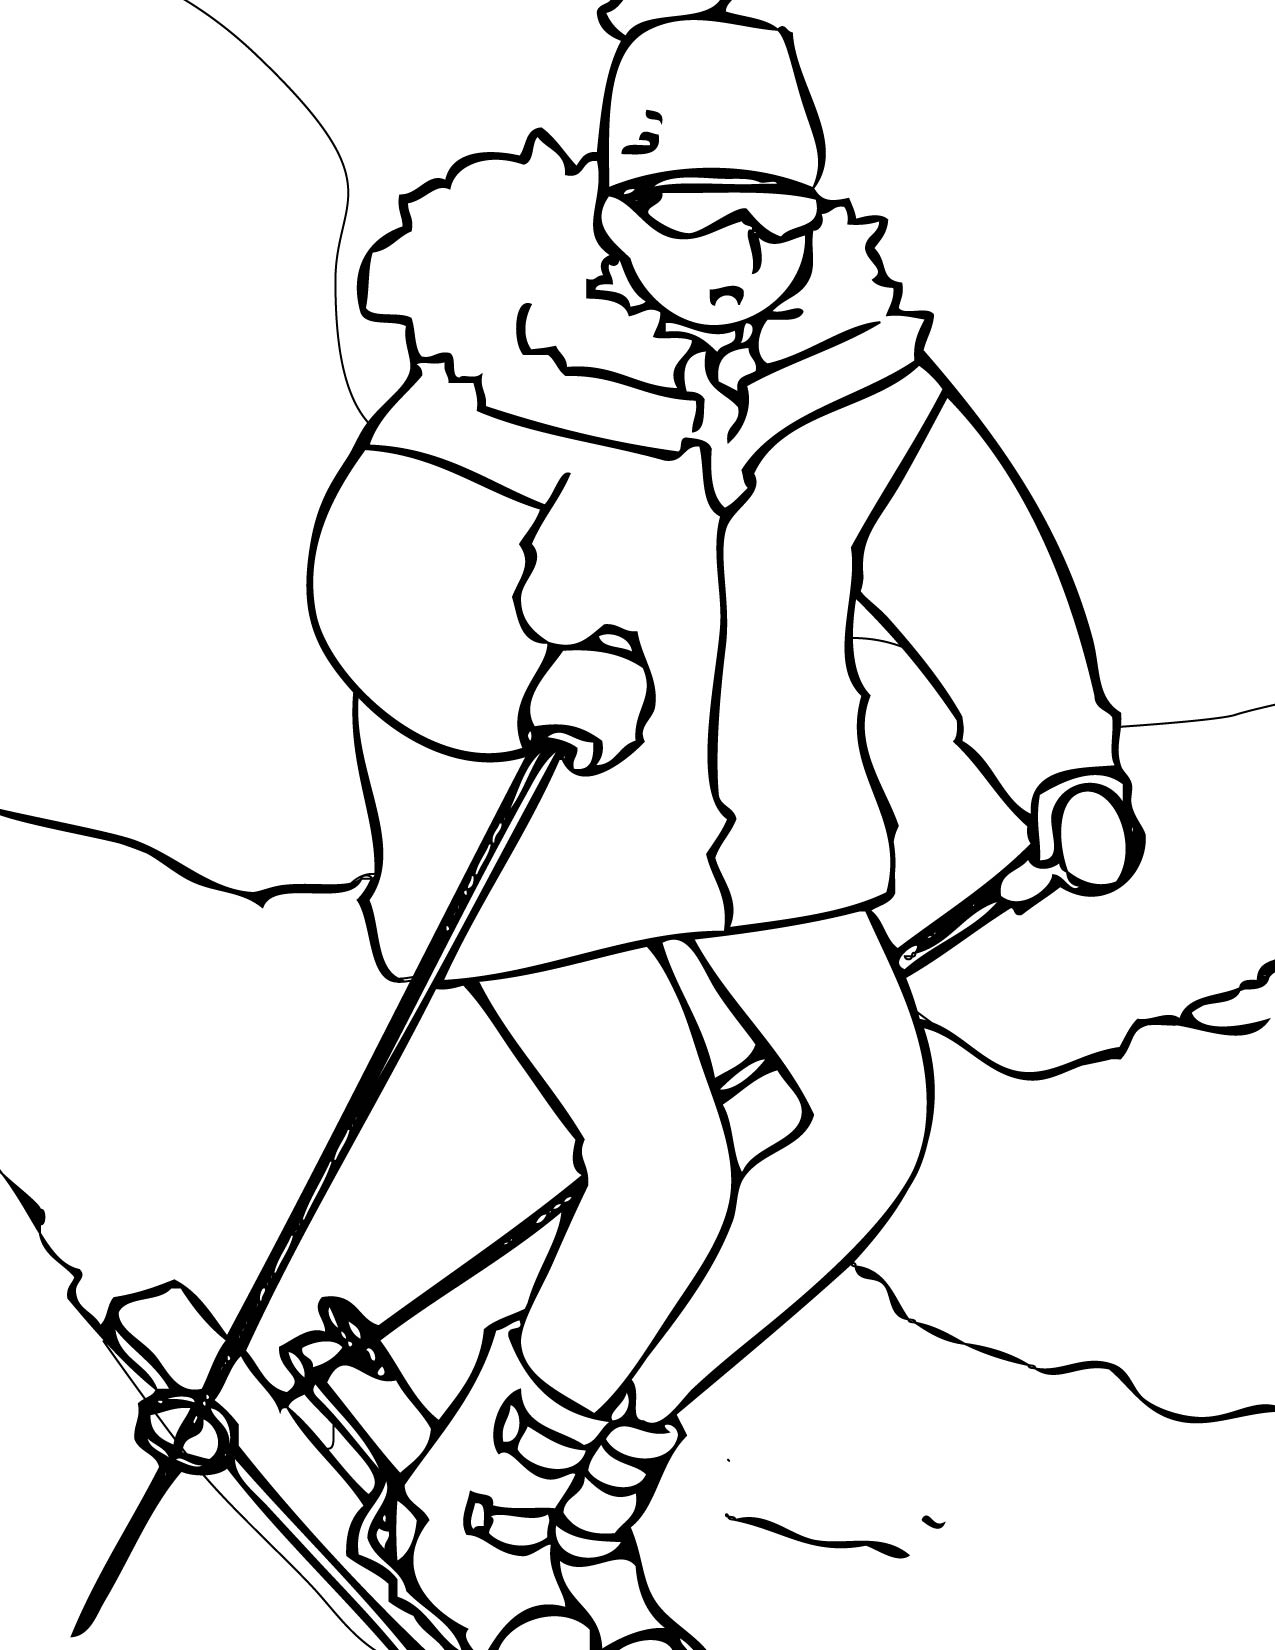 printable winter-sports coloring pages,printable,coloring pages